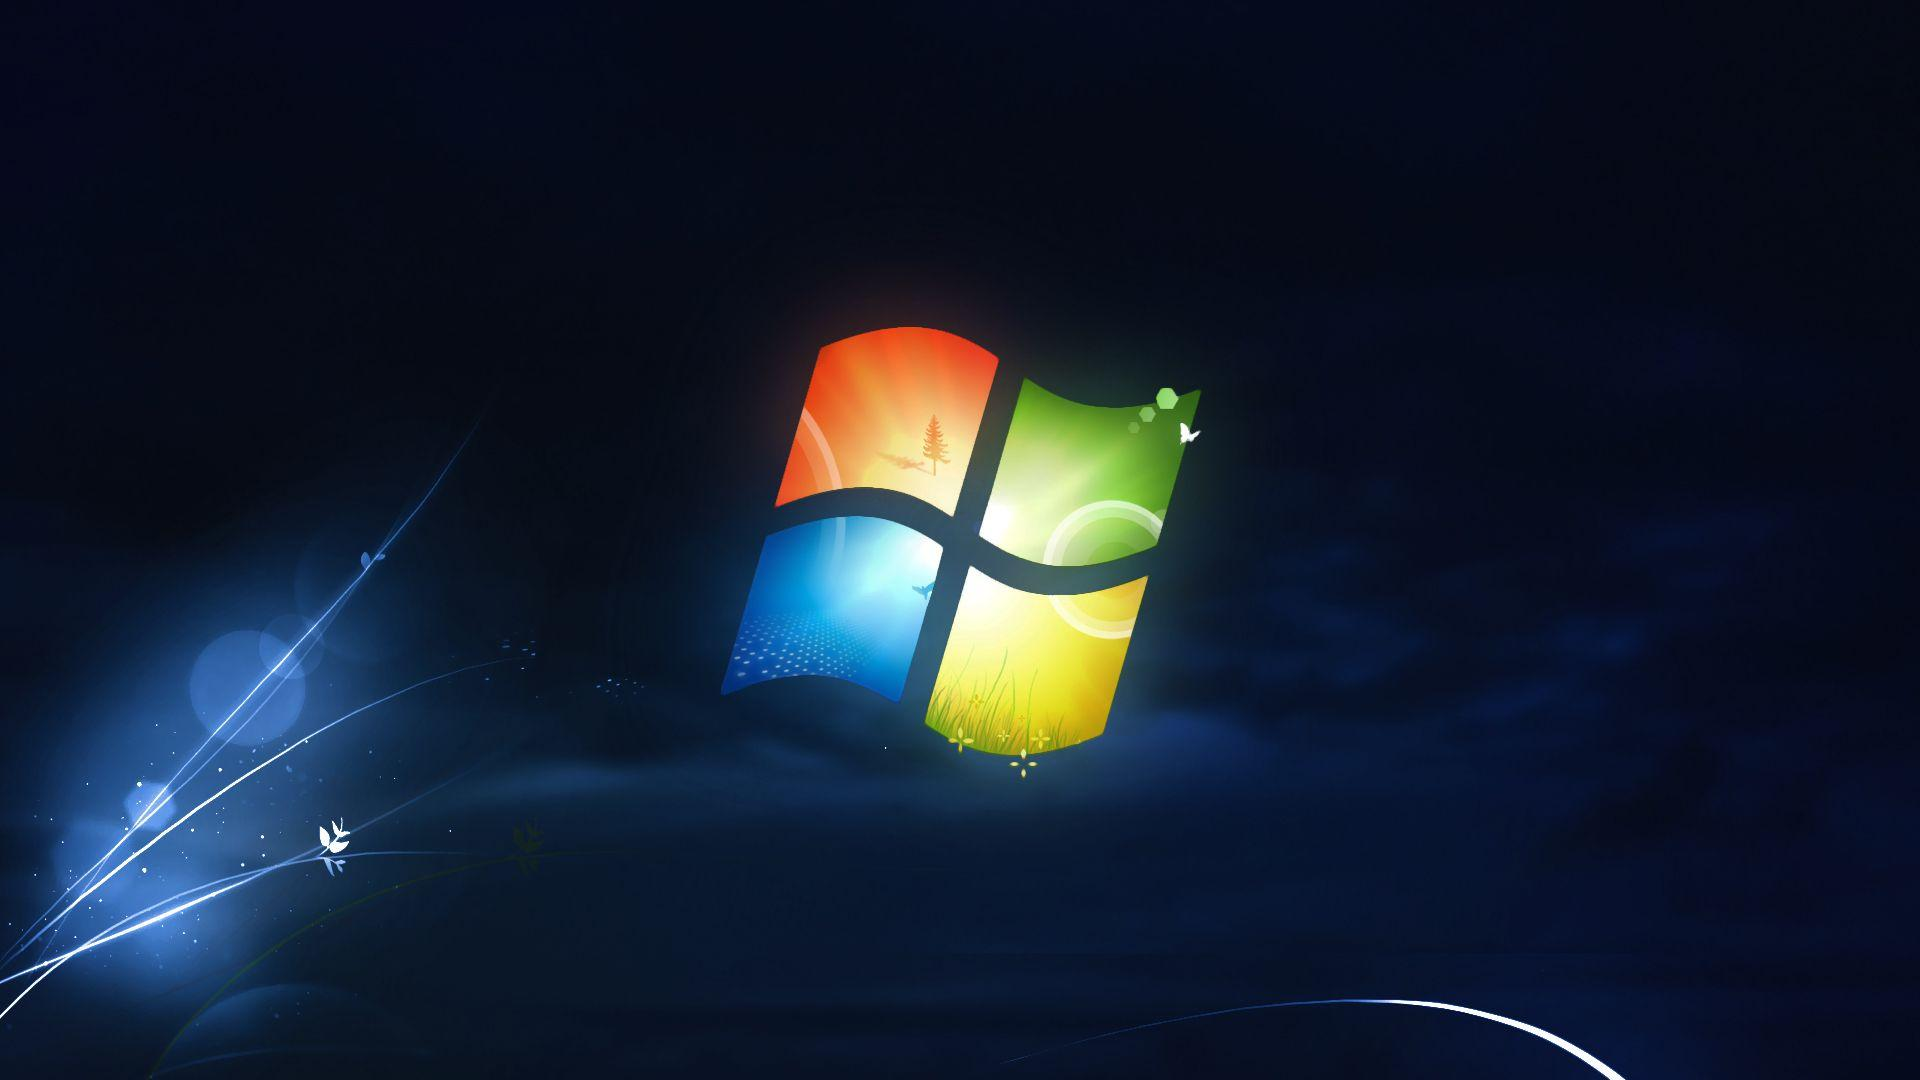 Microsoft HD Desktop Wallpapers